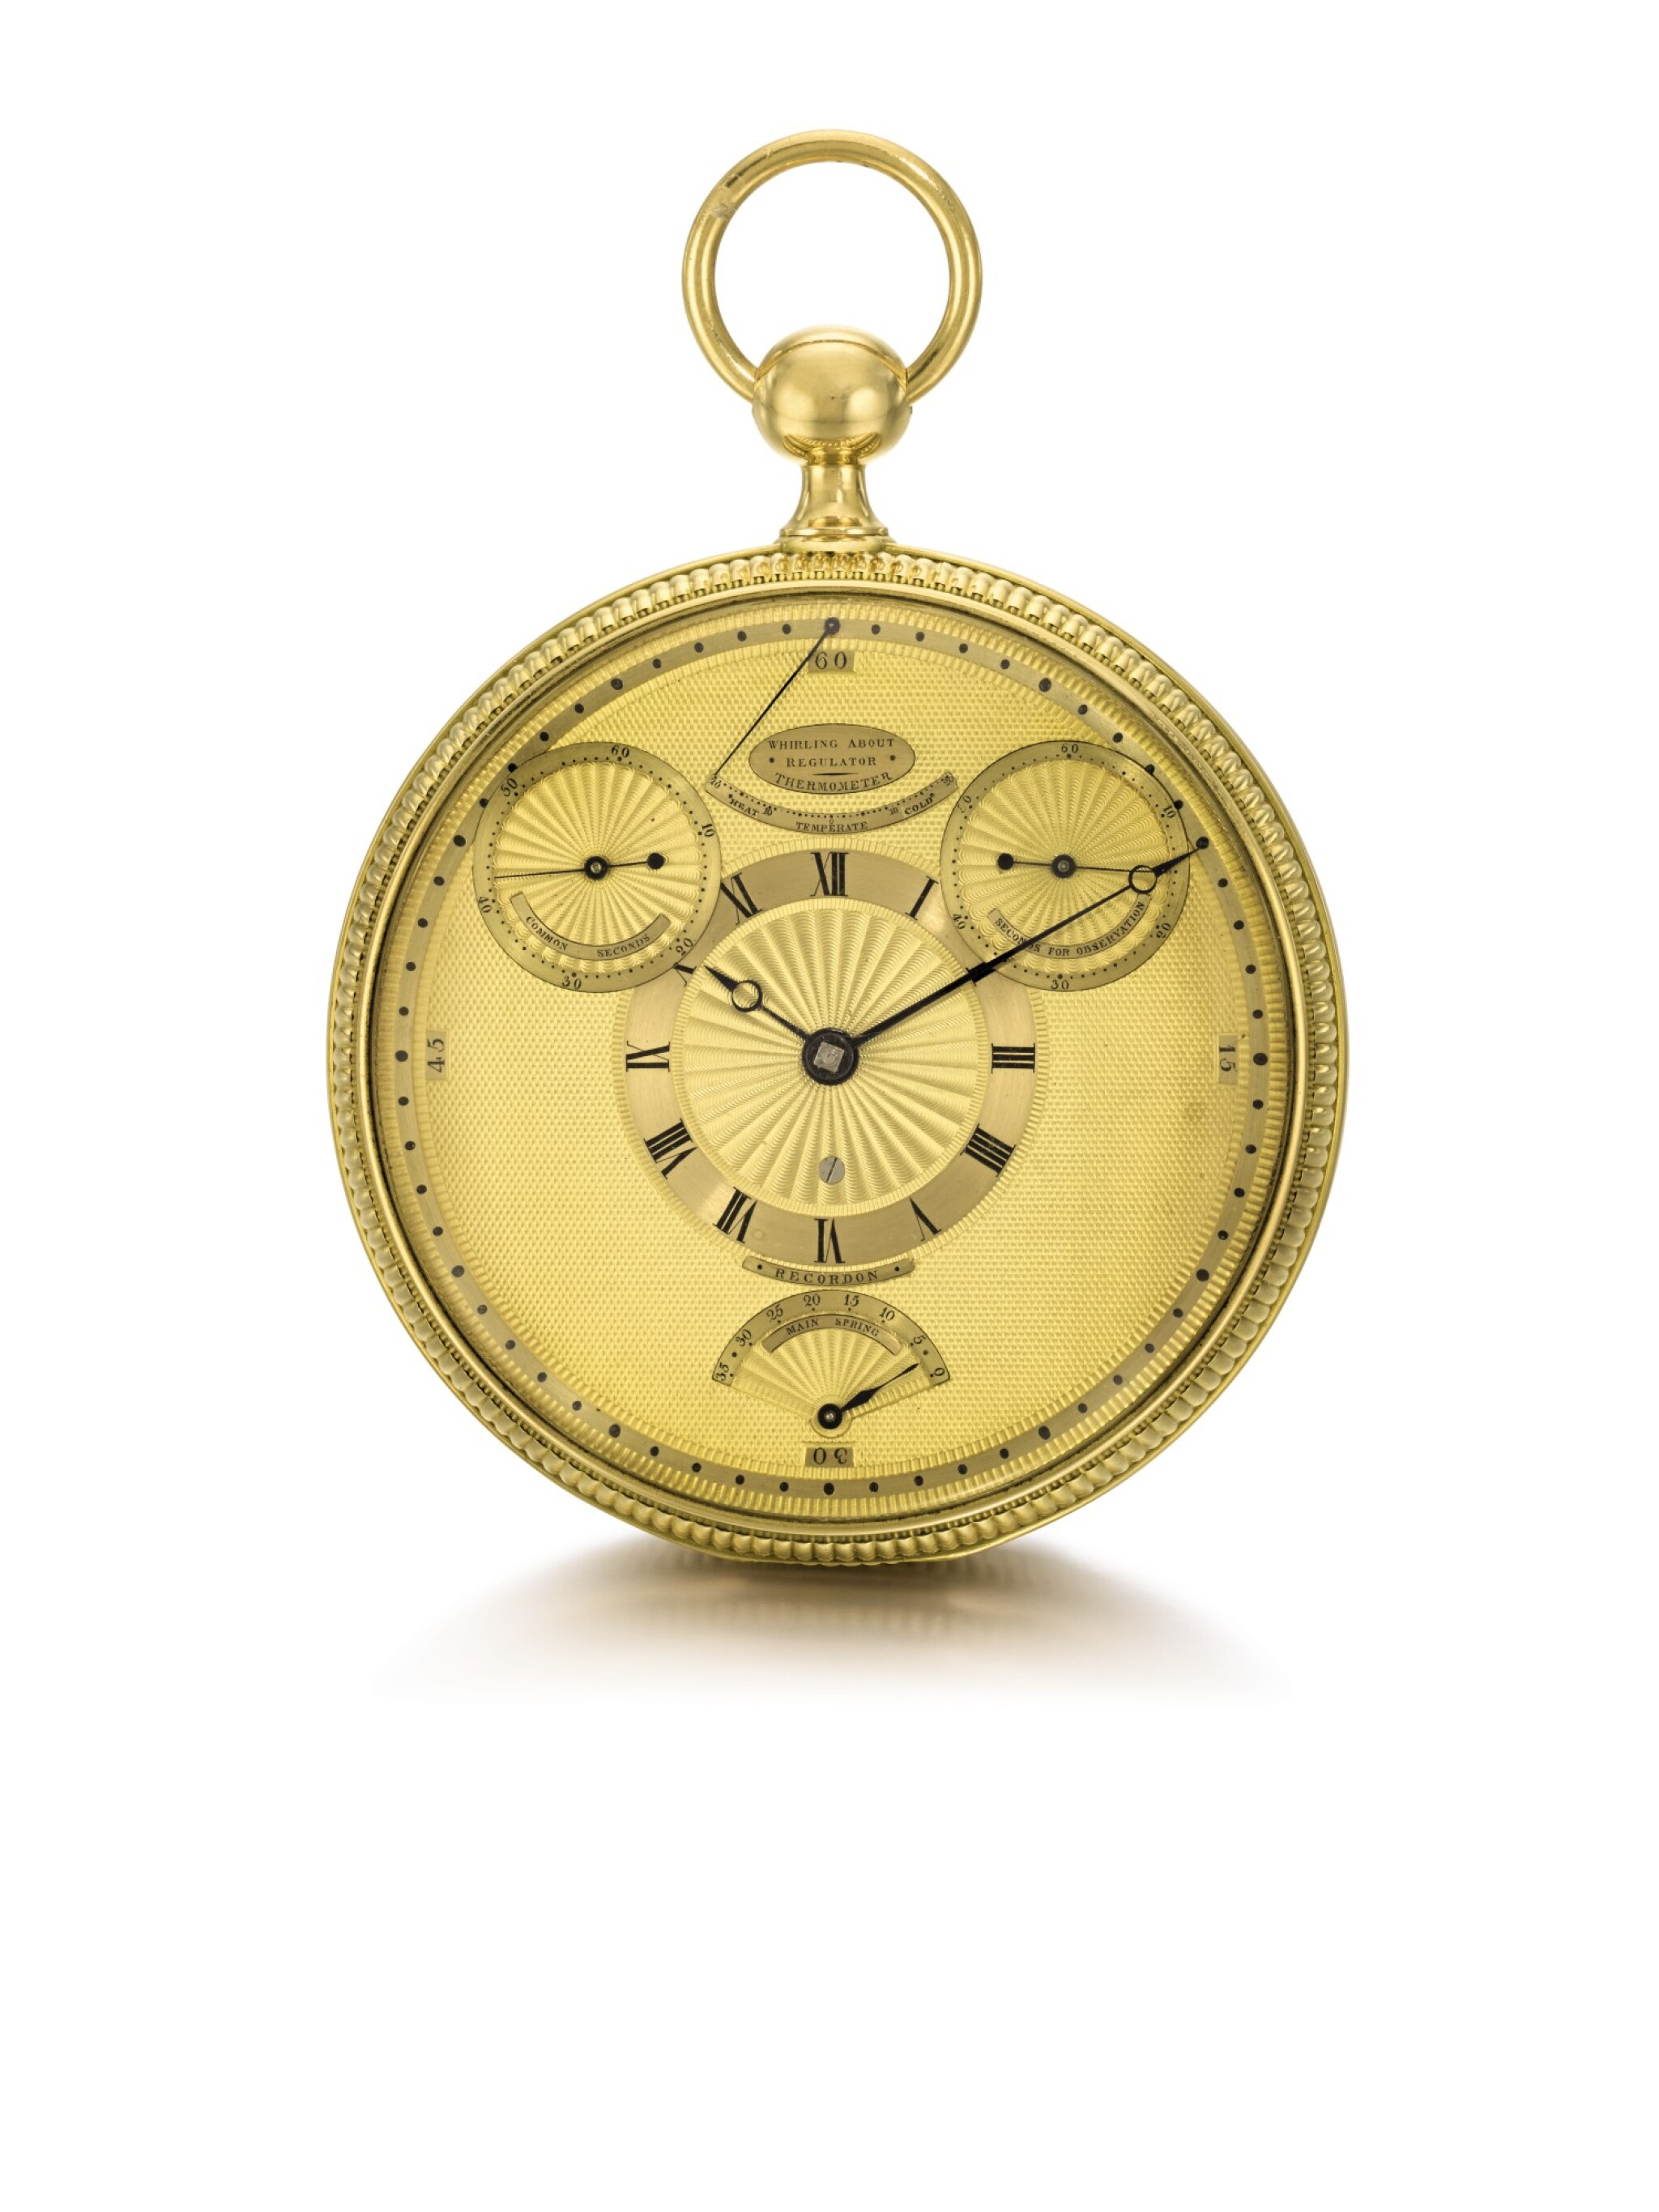 View full screen - View 1 of Lot 28. BREGUET | RETAILED BY RECORDON, LONDON: A HIGHLY IMPORTANT GOLD FOUR MINUTE TOURBILLON WATCH OF ROYAL PROVENANCE WITH ROBIN ESCAPEMENT, THERMOMETER AND STOP SLIDE FOR TIMING THE SECONDS  1808, NO. 1297.